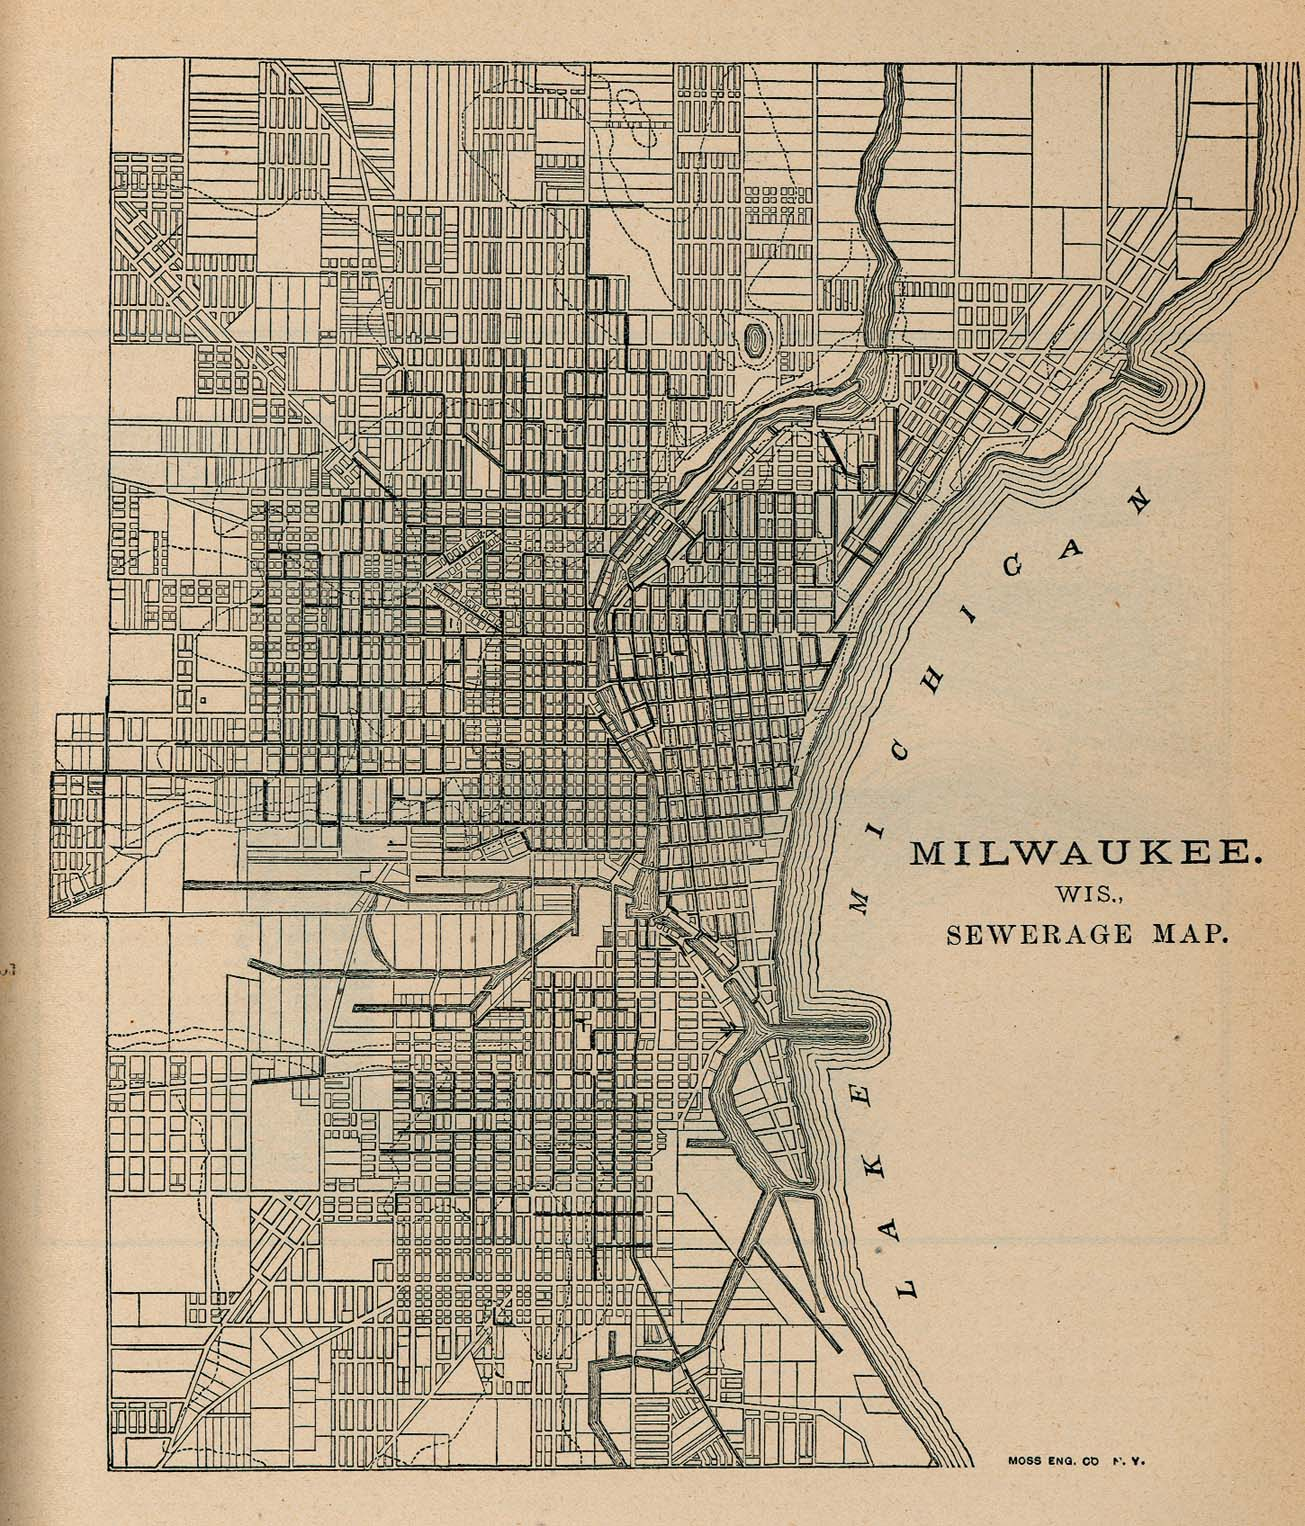 Milwaukee Sewage Map, Wisconsin, United States 1880